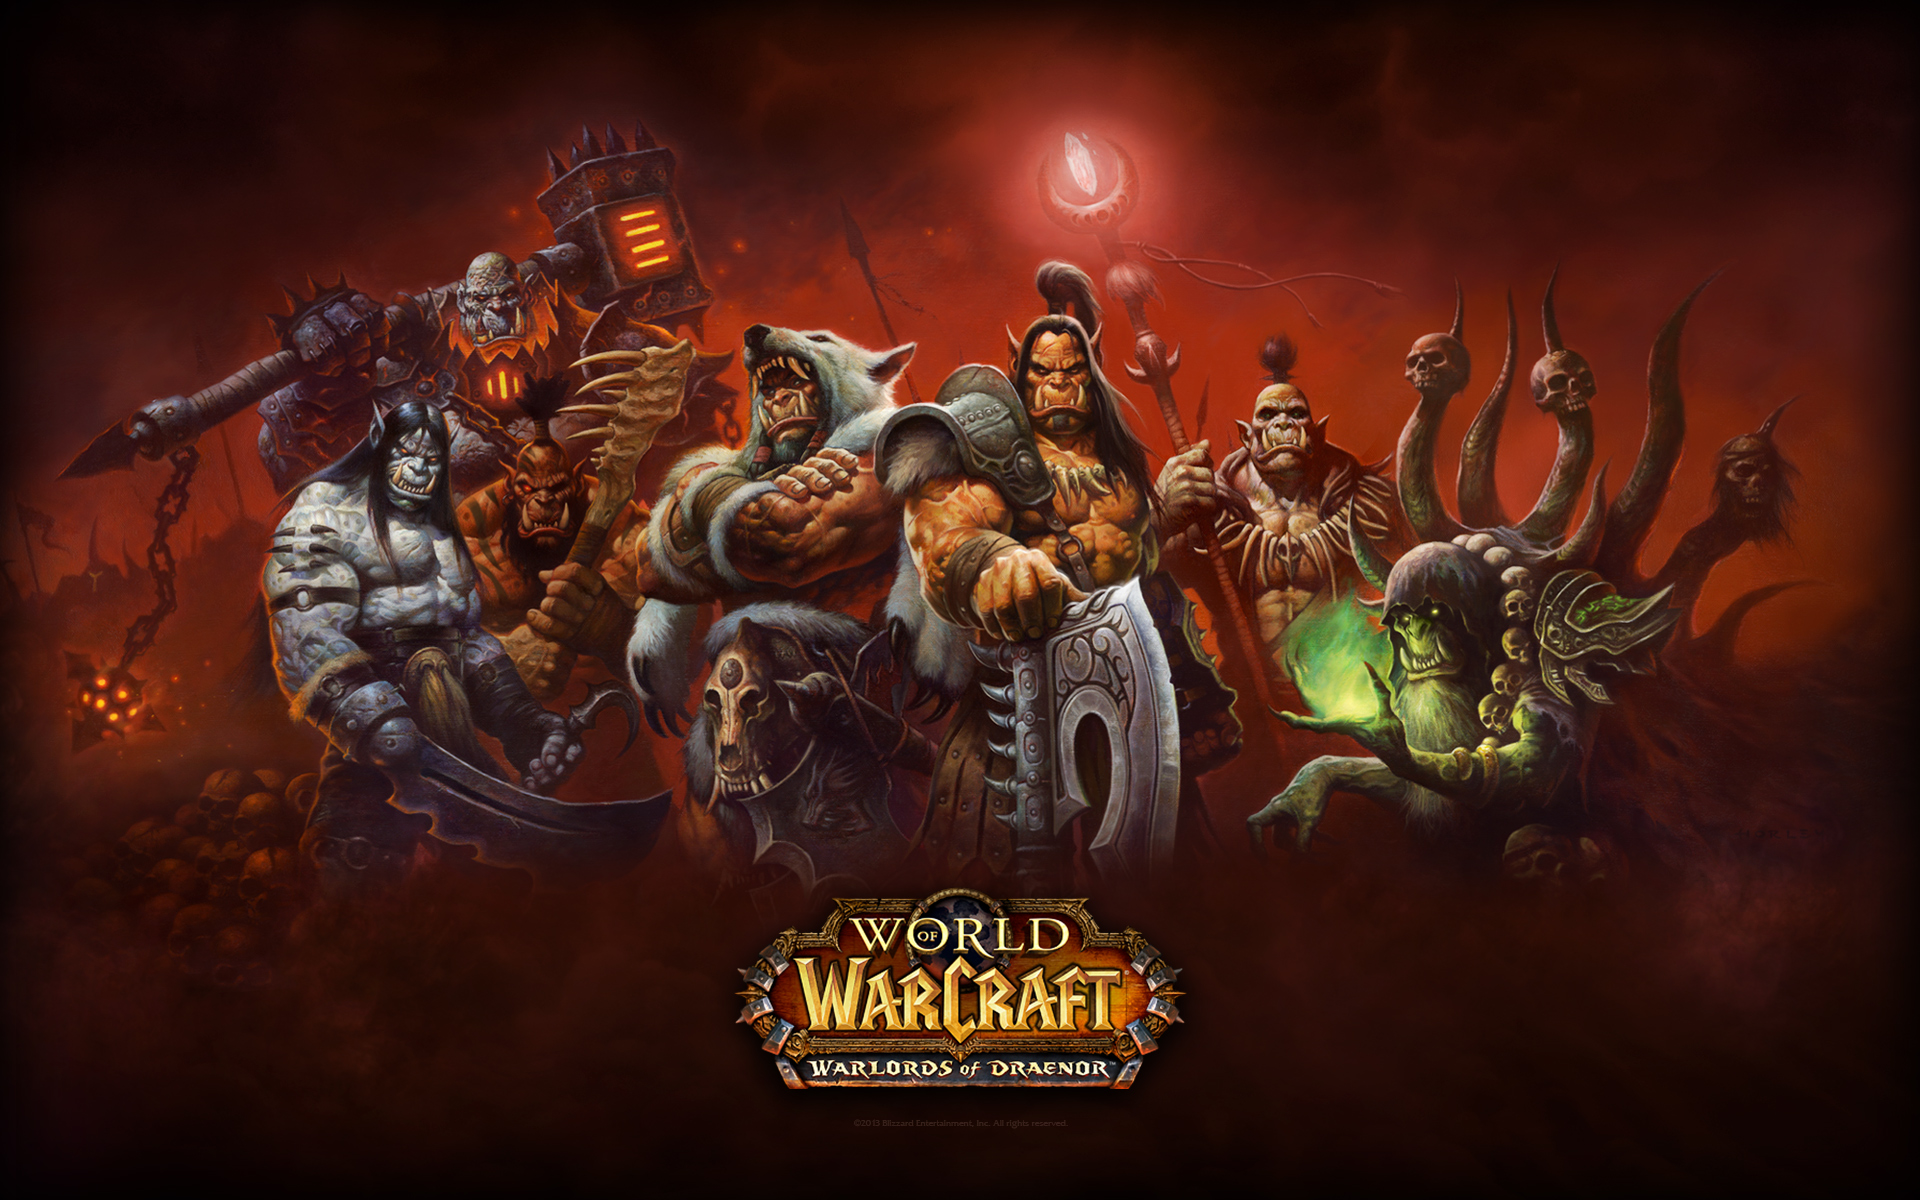 warlords-of-draenor-1920x1200.jpg